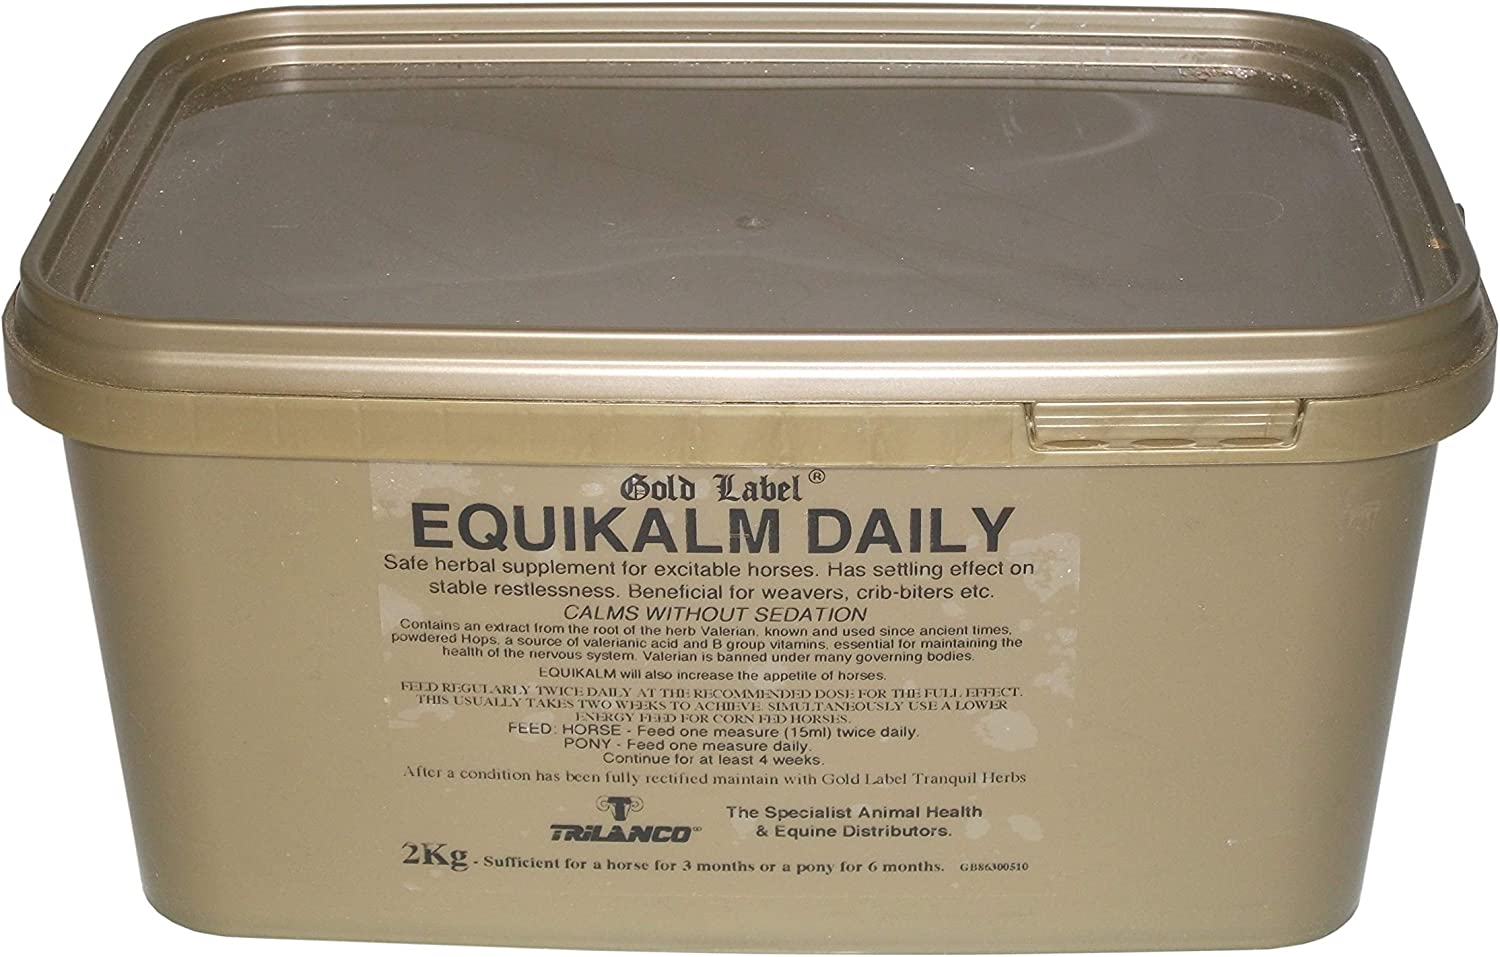 Equikalm Daily, Horse Calming, gold Label, Horse Supplement, 2 KG